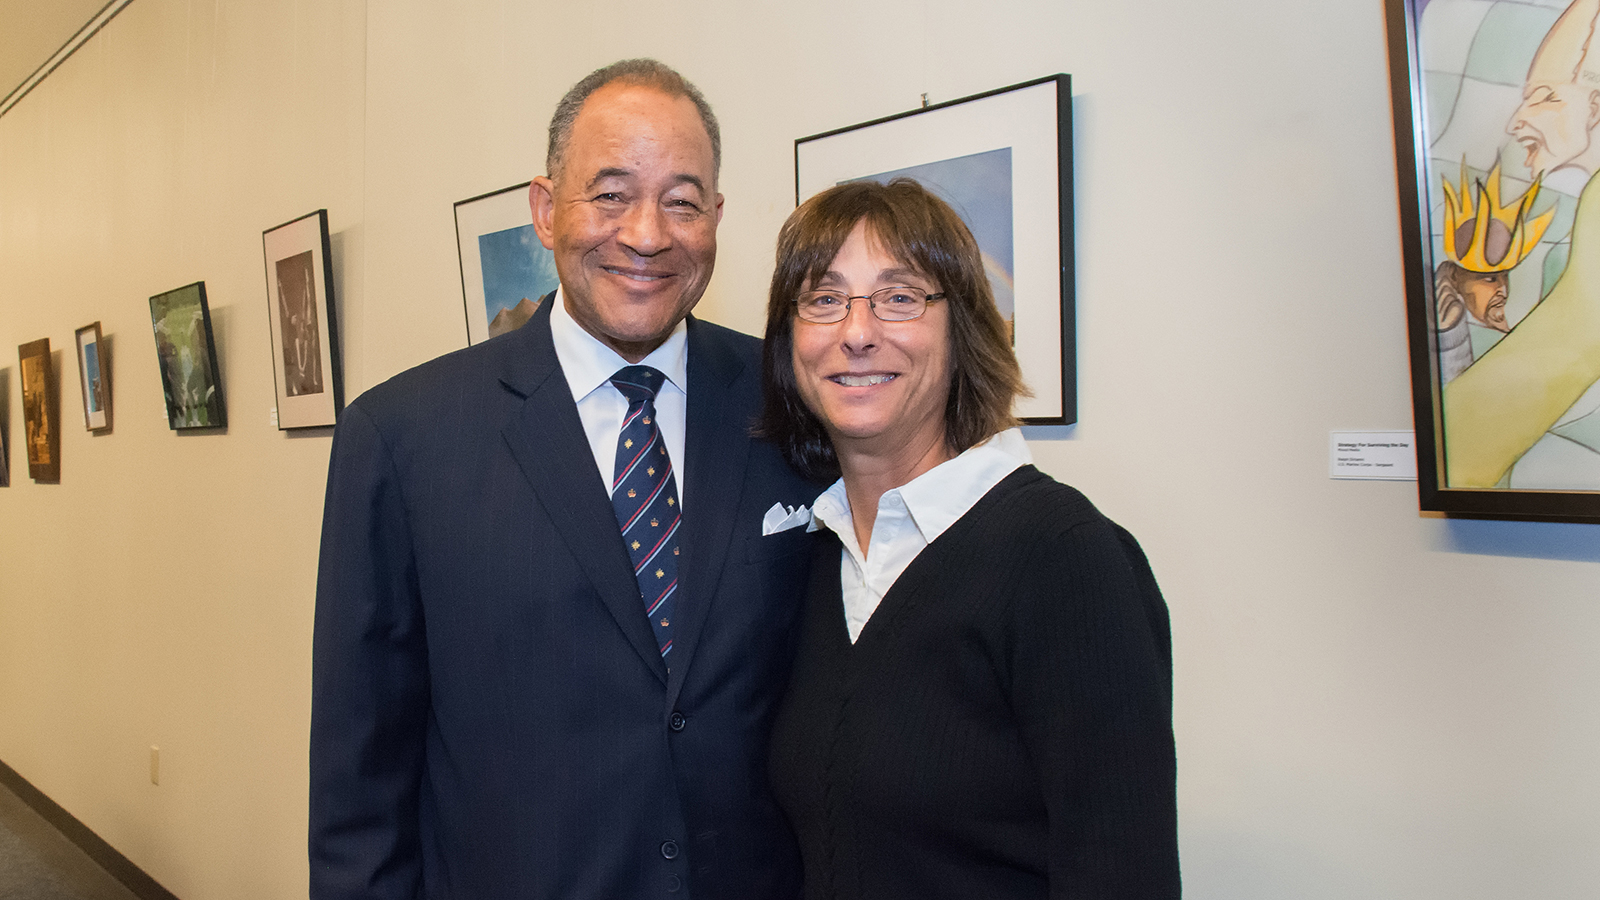 WNED | WBFO President and CEO Don Boswell with curator by Jackie Albarella